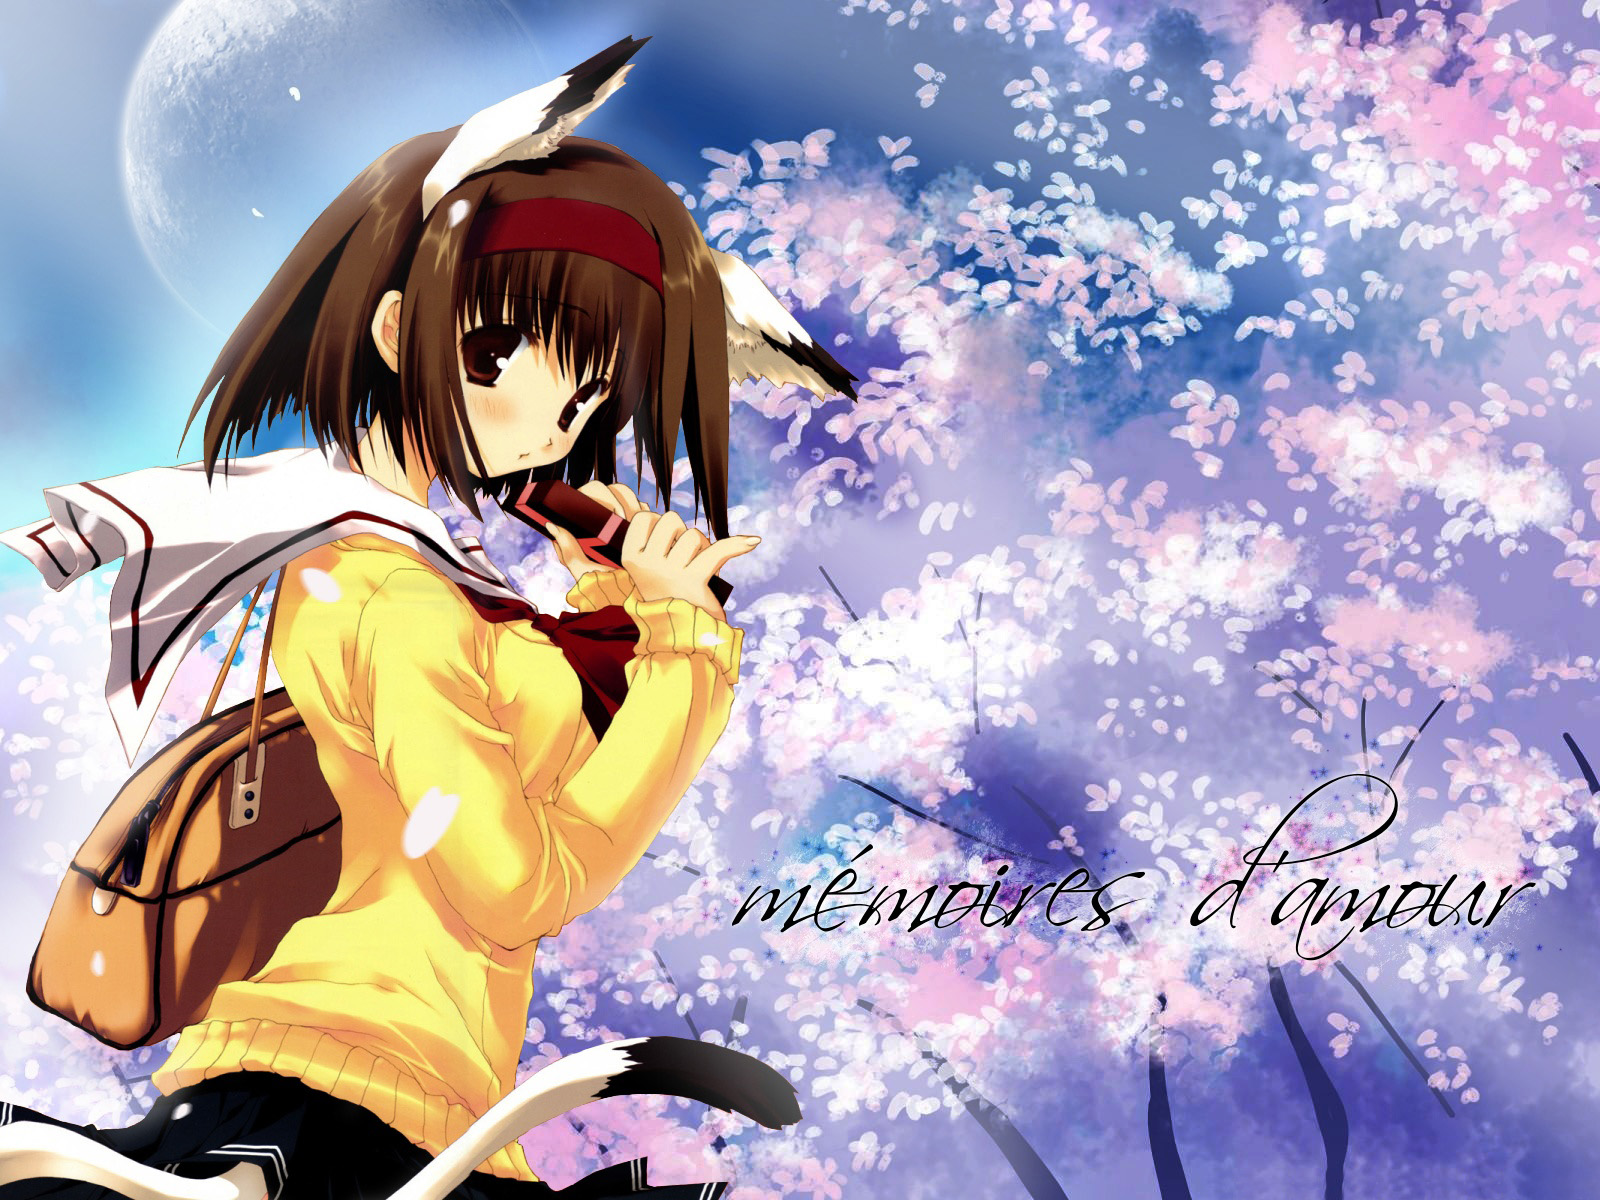 Memoires D'amour - Anime Wallpaper